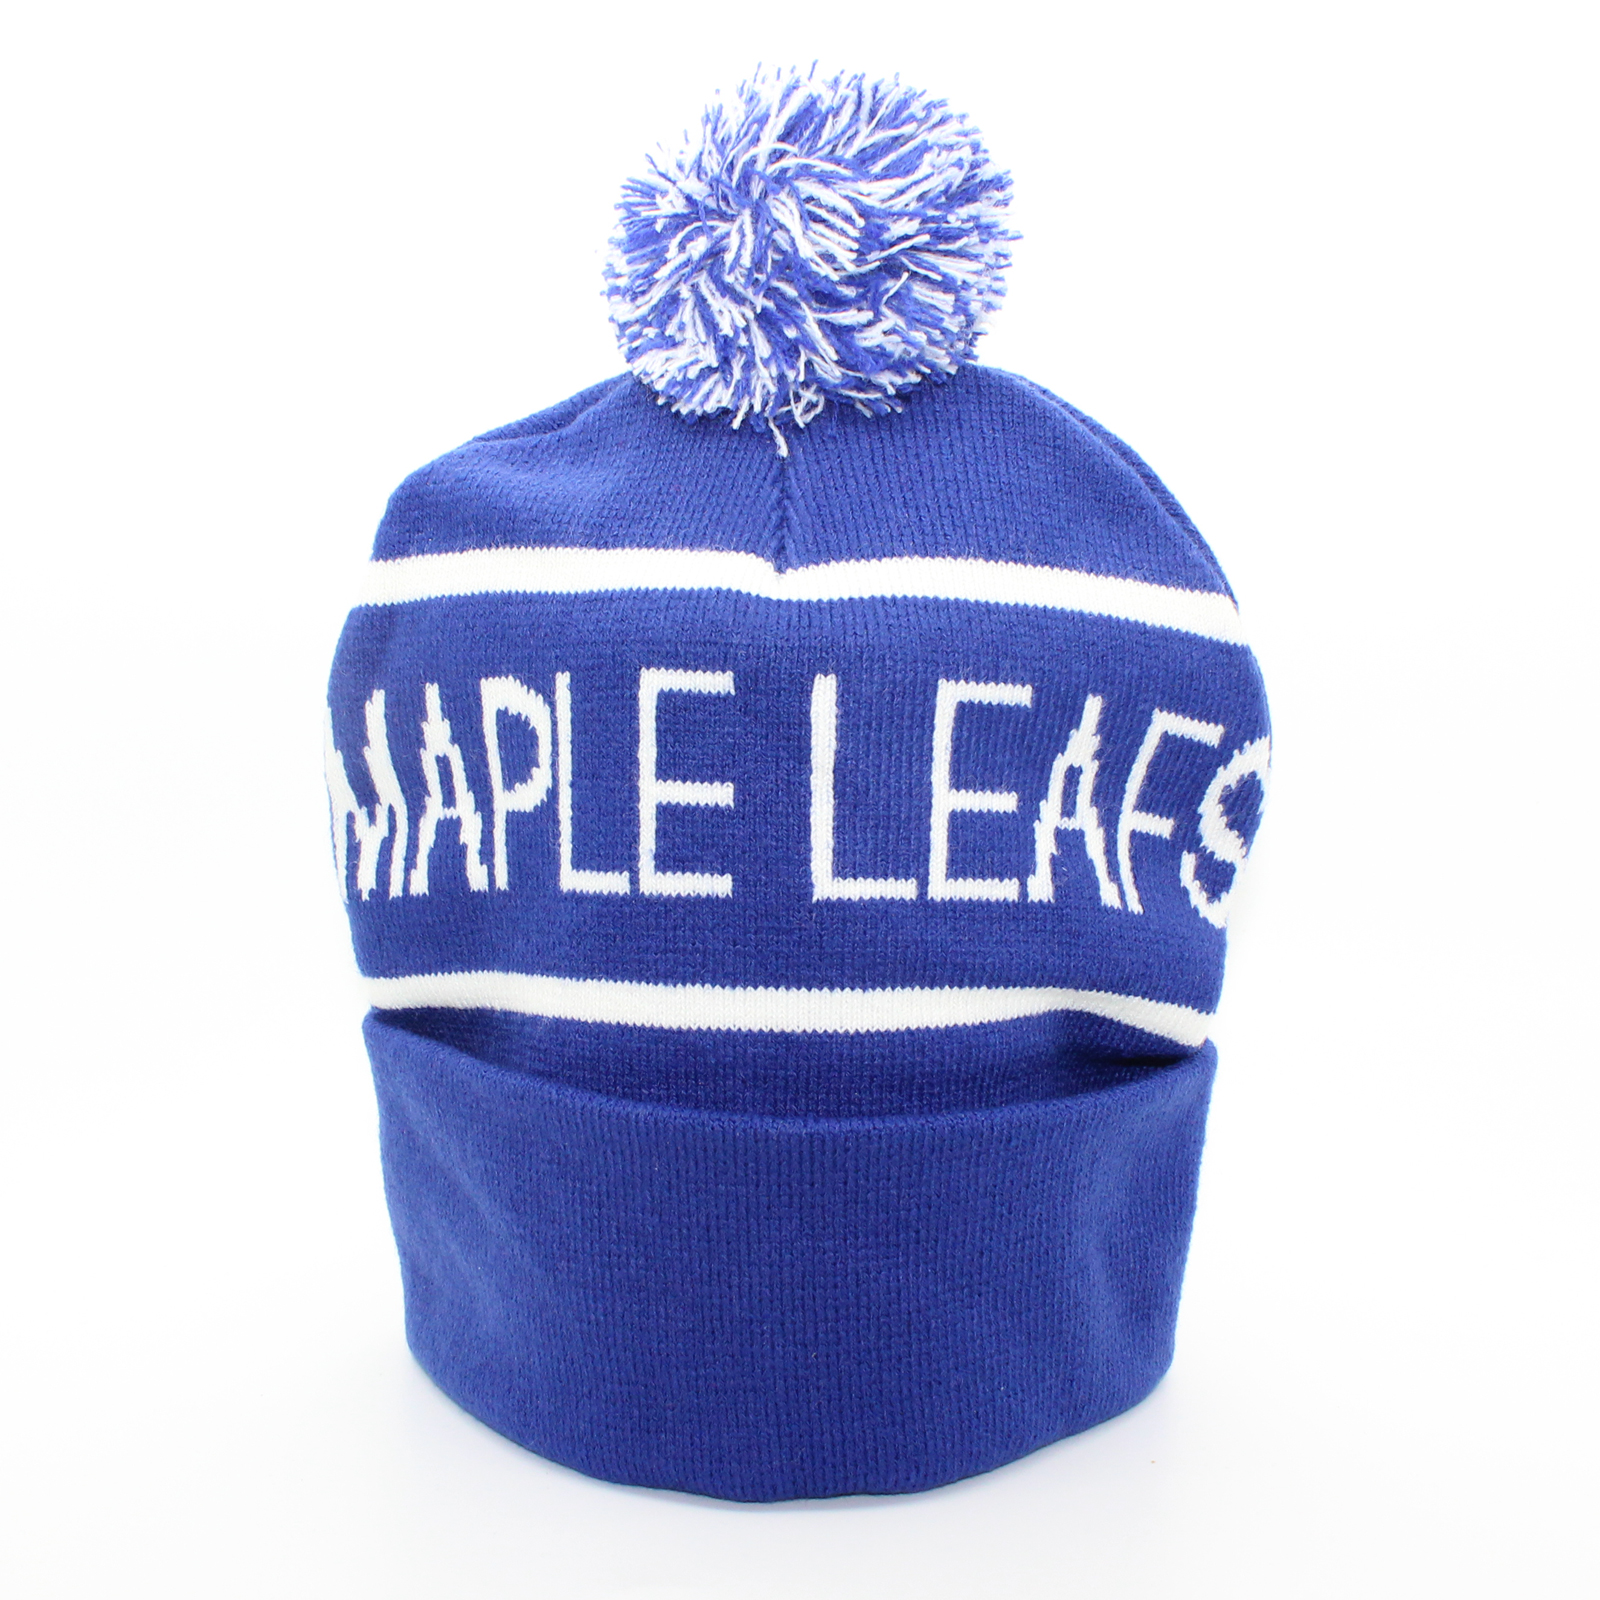 0d2a99979 ... hat walmart; toronto maple leafs nhl hockey cuffed knit unbranded